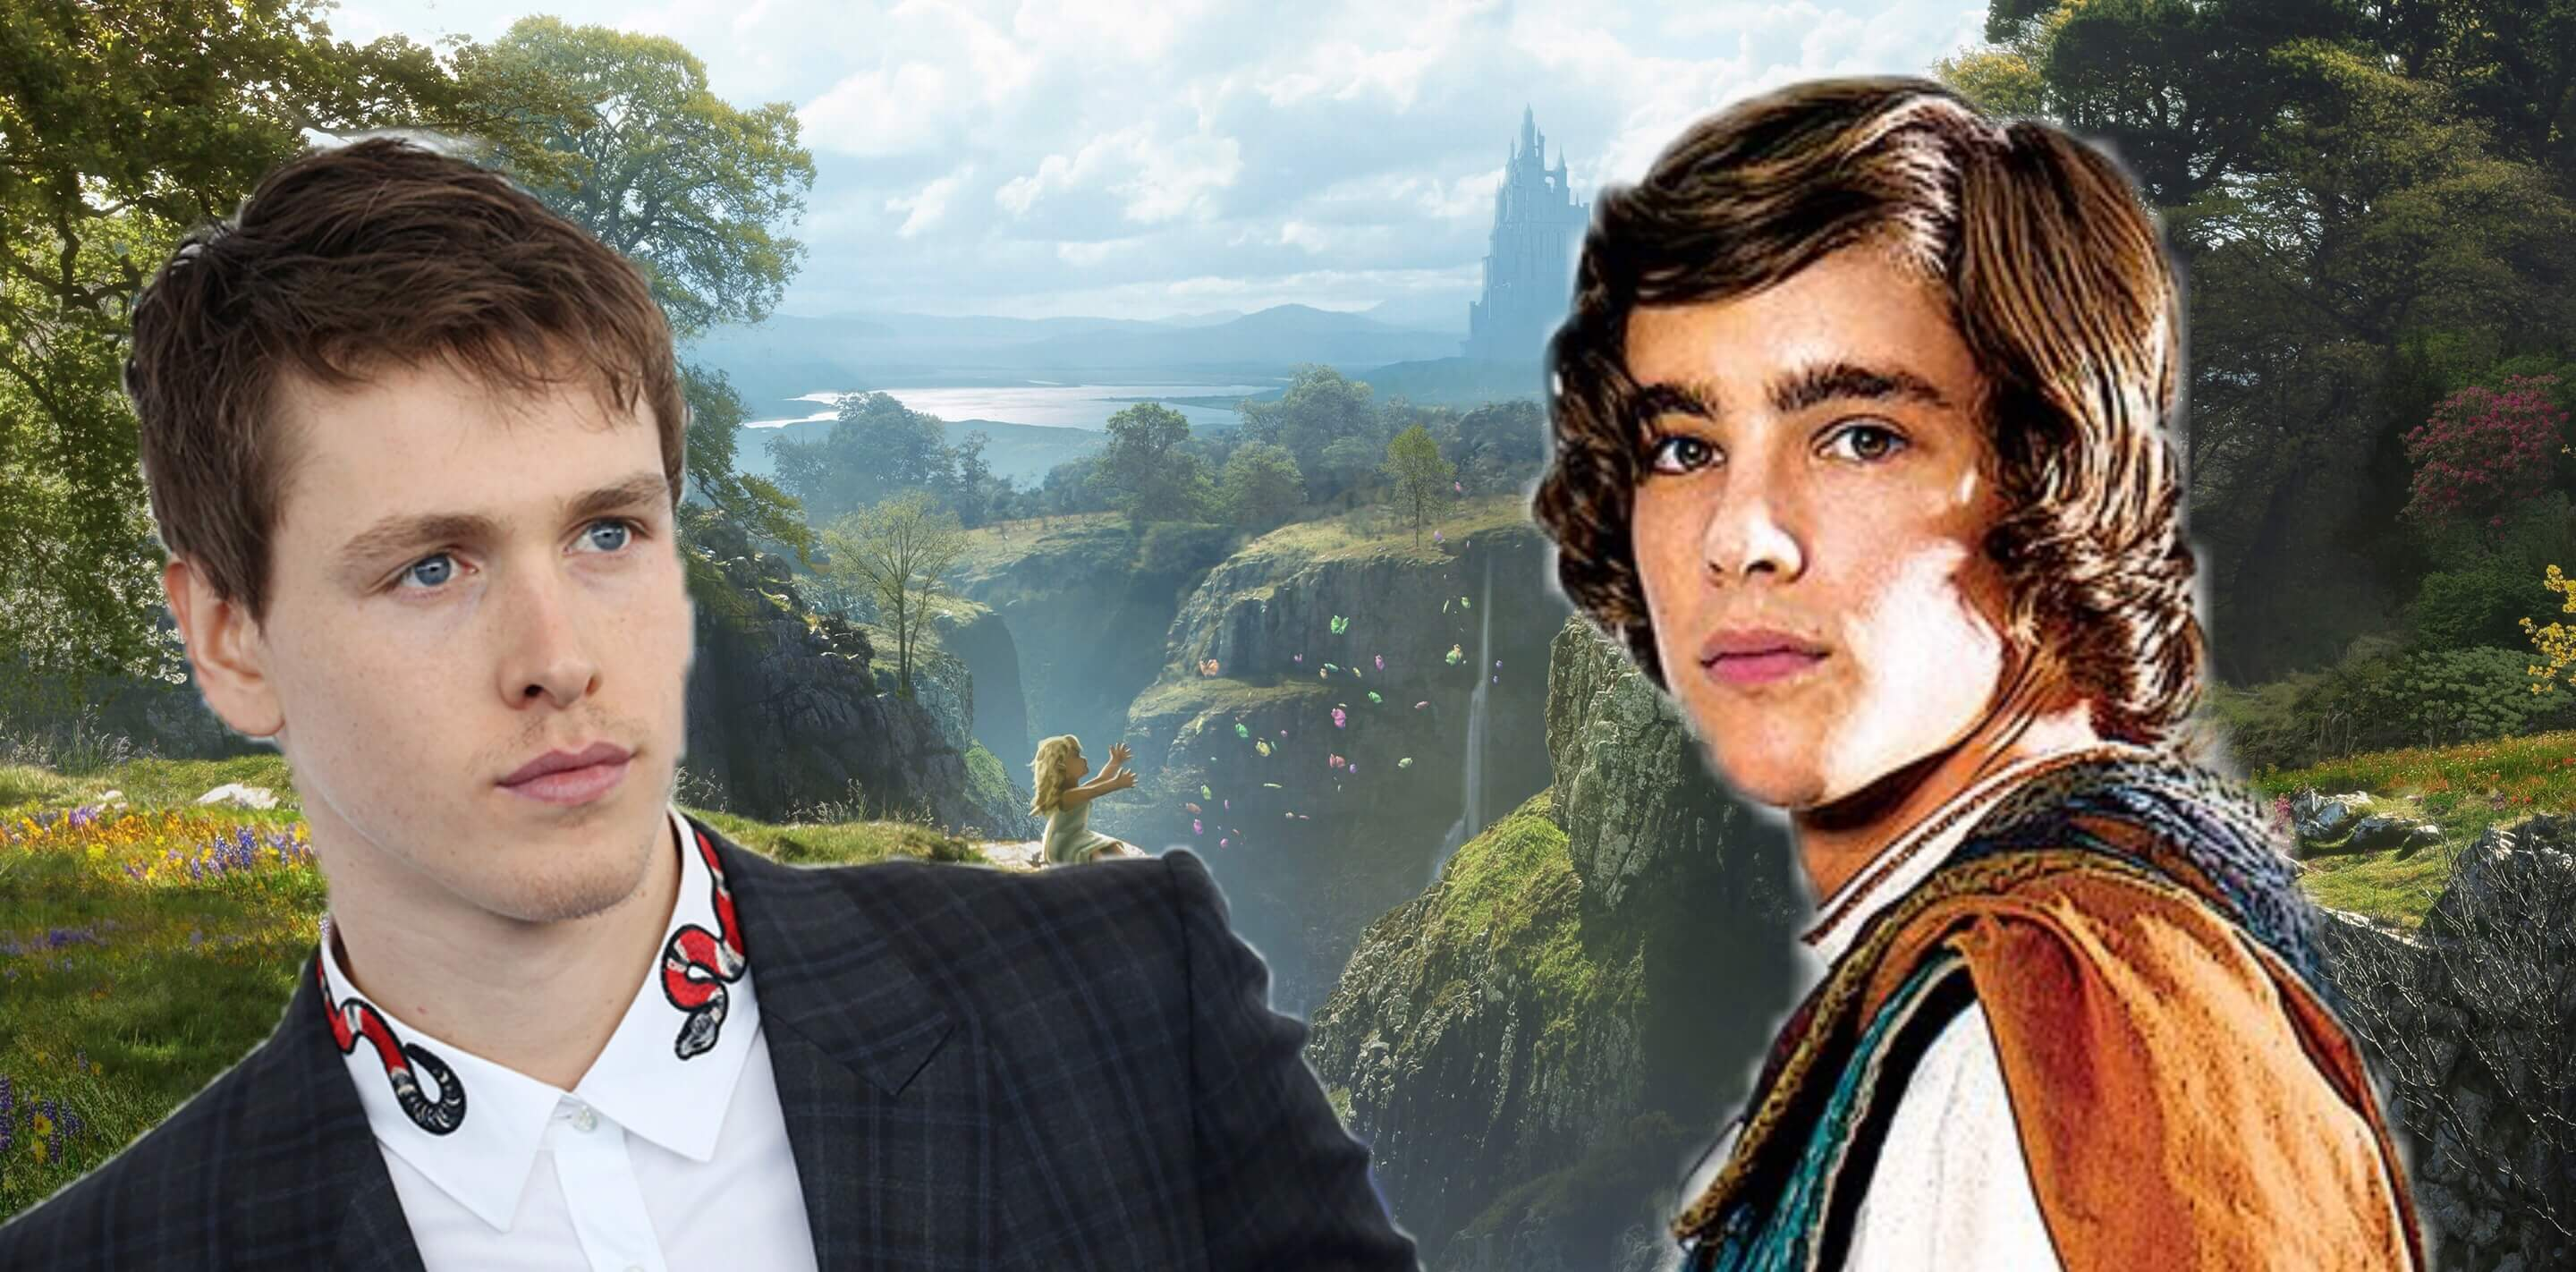 Harrison Dickinson To Replace Brenton Thwaites In Maleficent 2